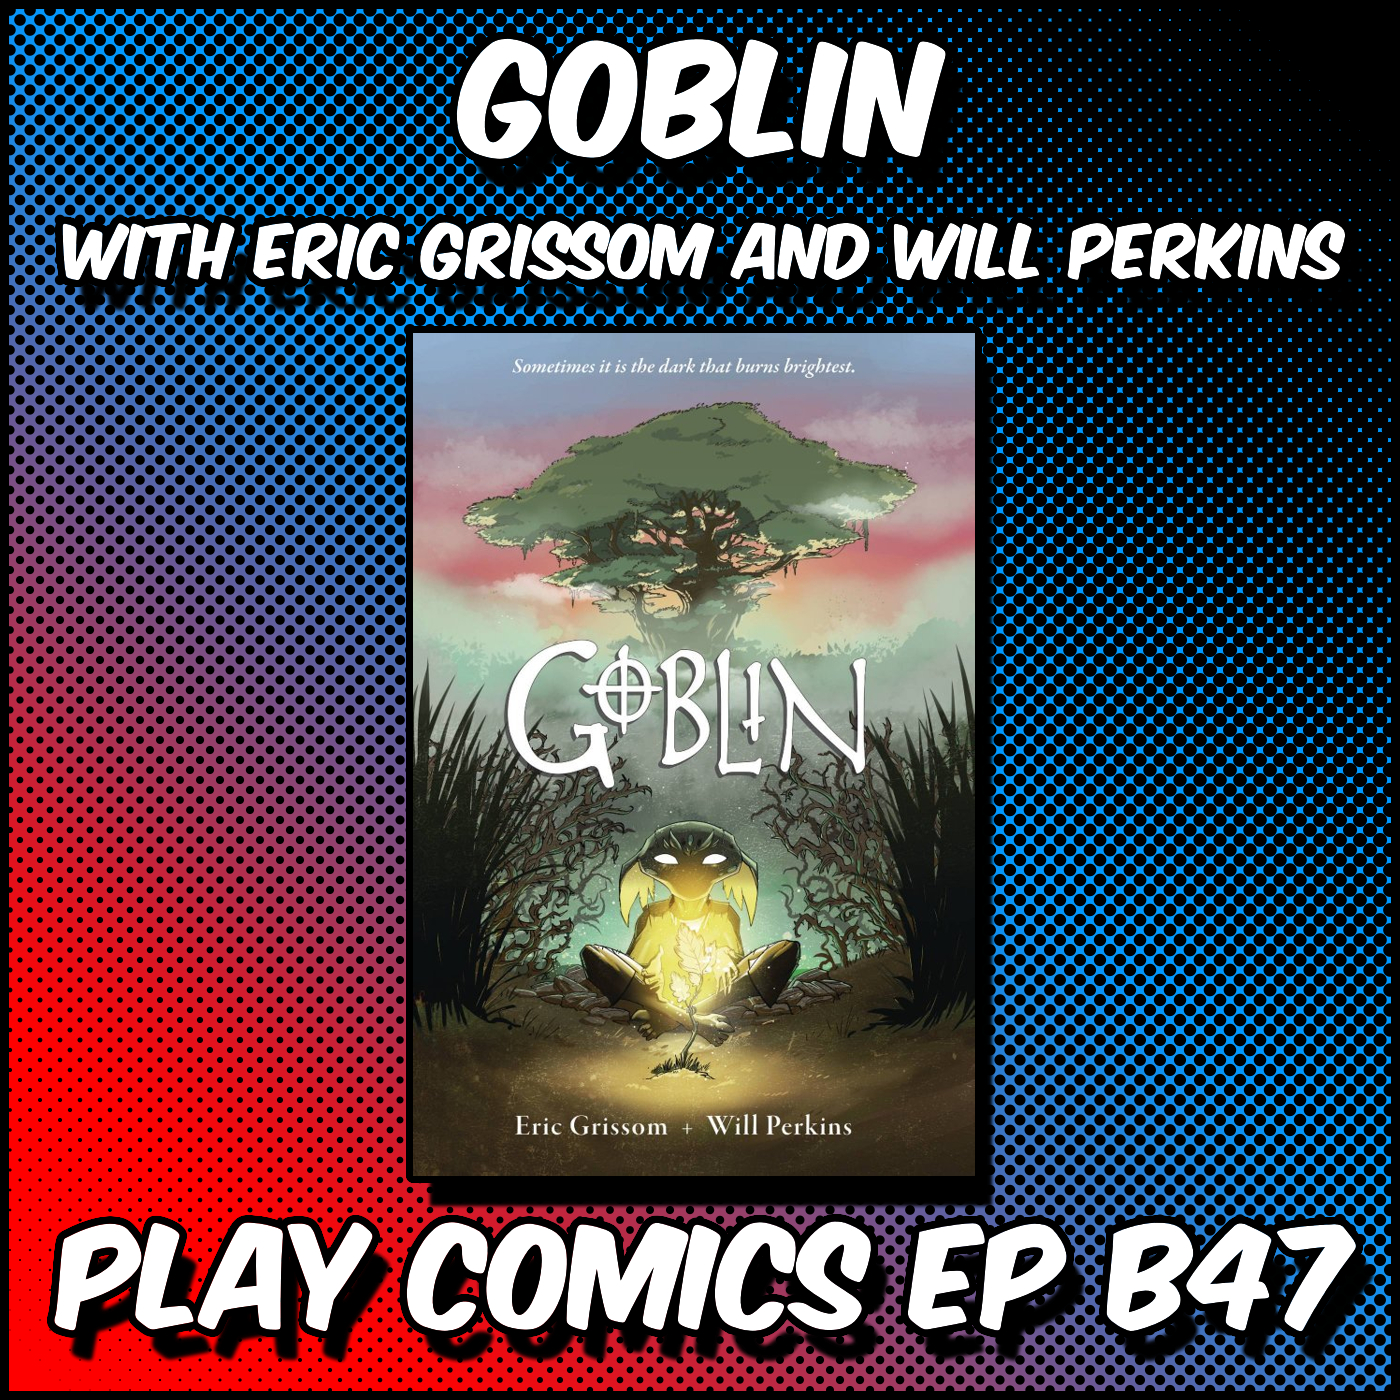 Goblin with Eric Grissom and Will Perkins